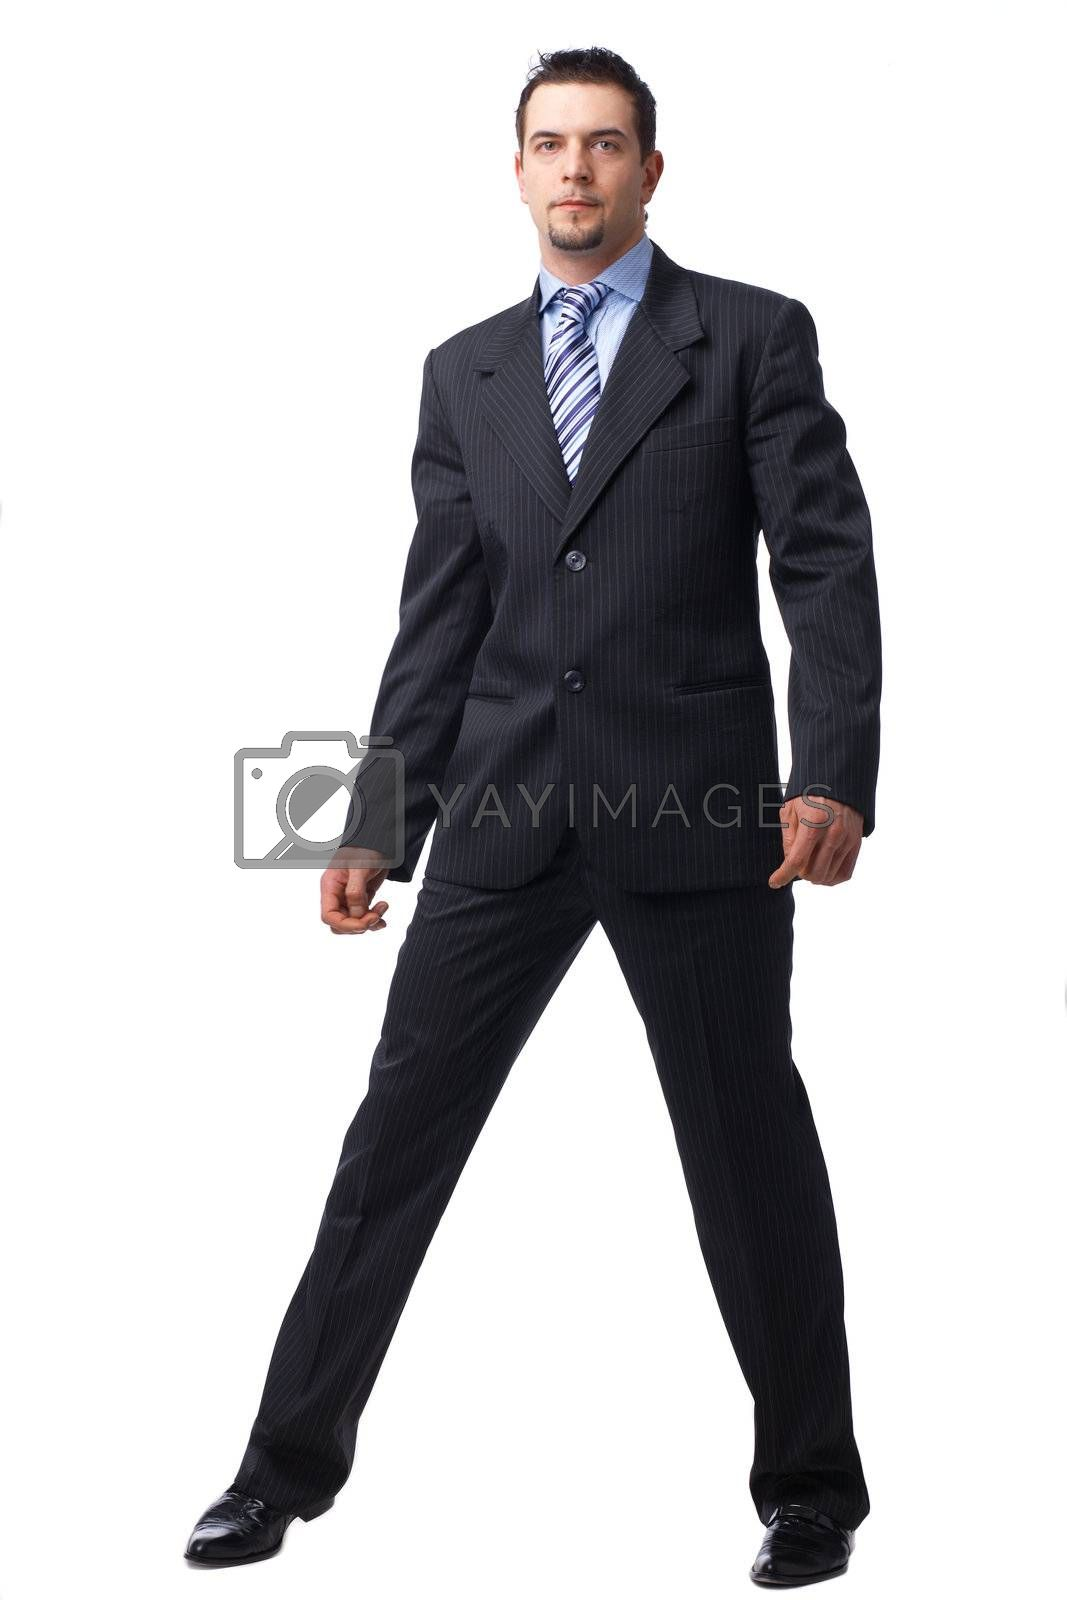 Portrait of a confident young businessman standing over white background.